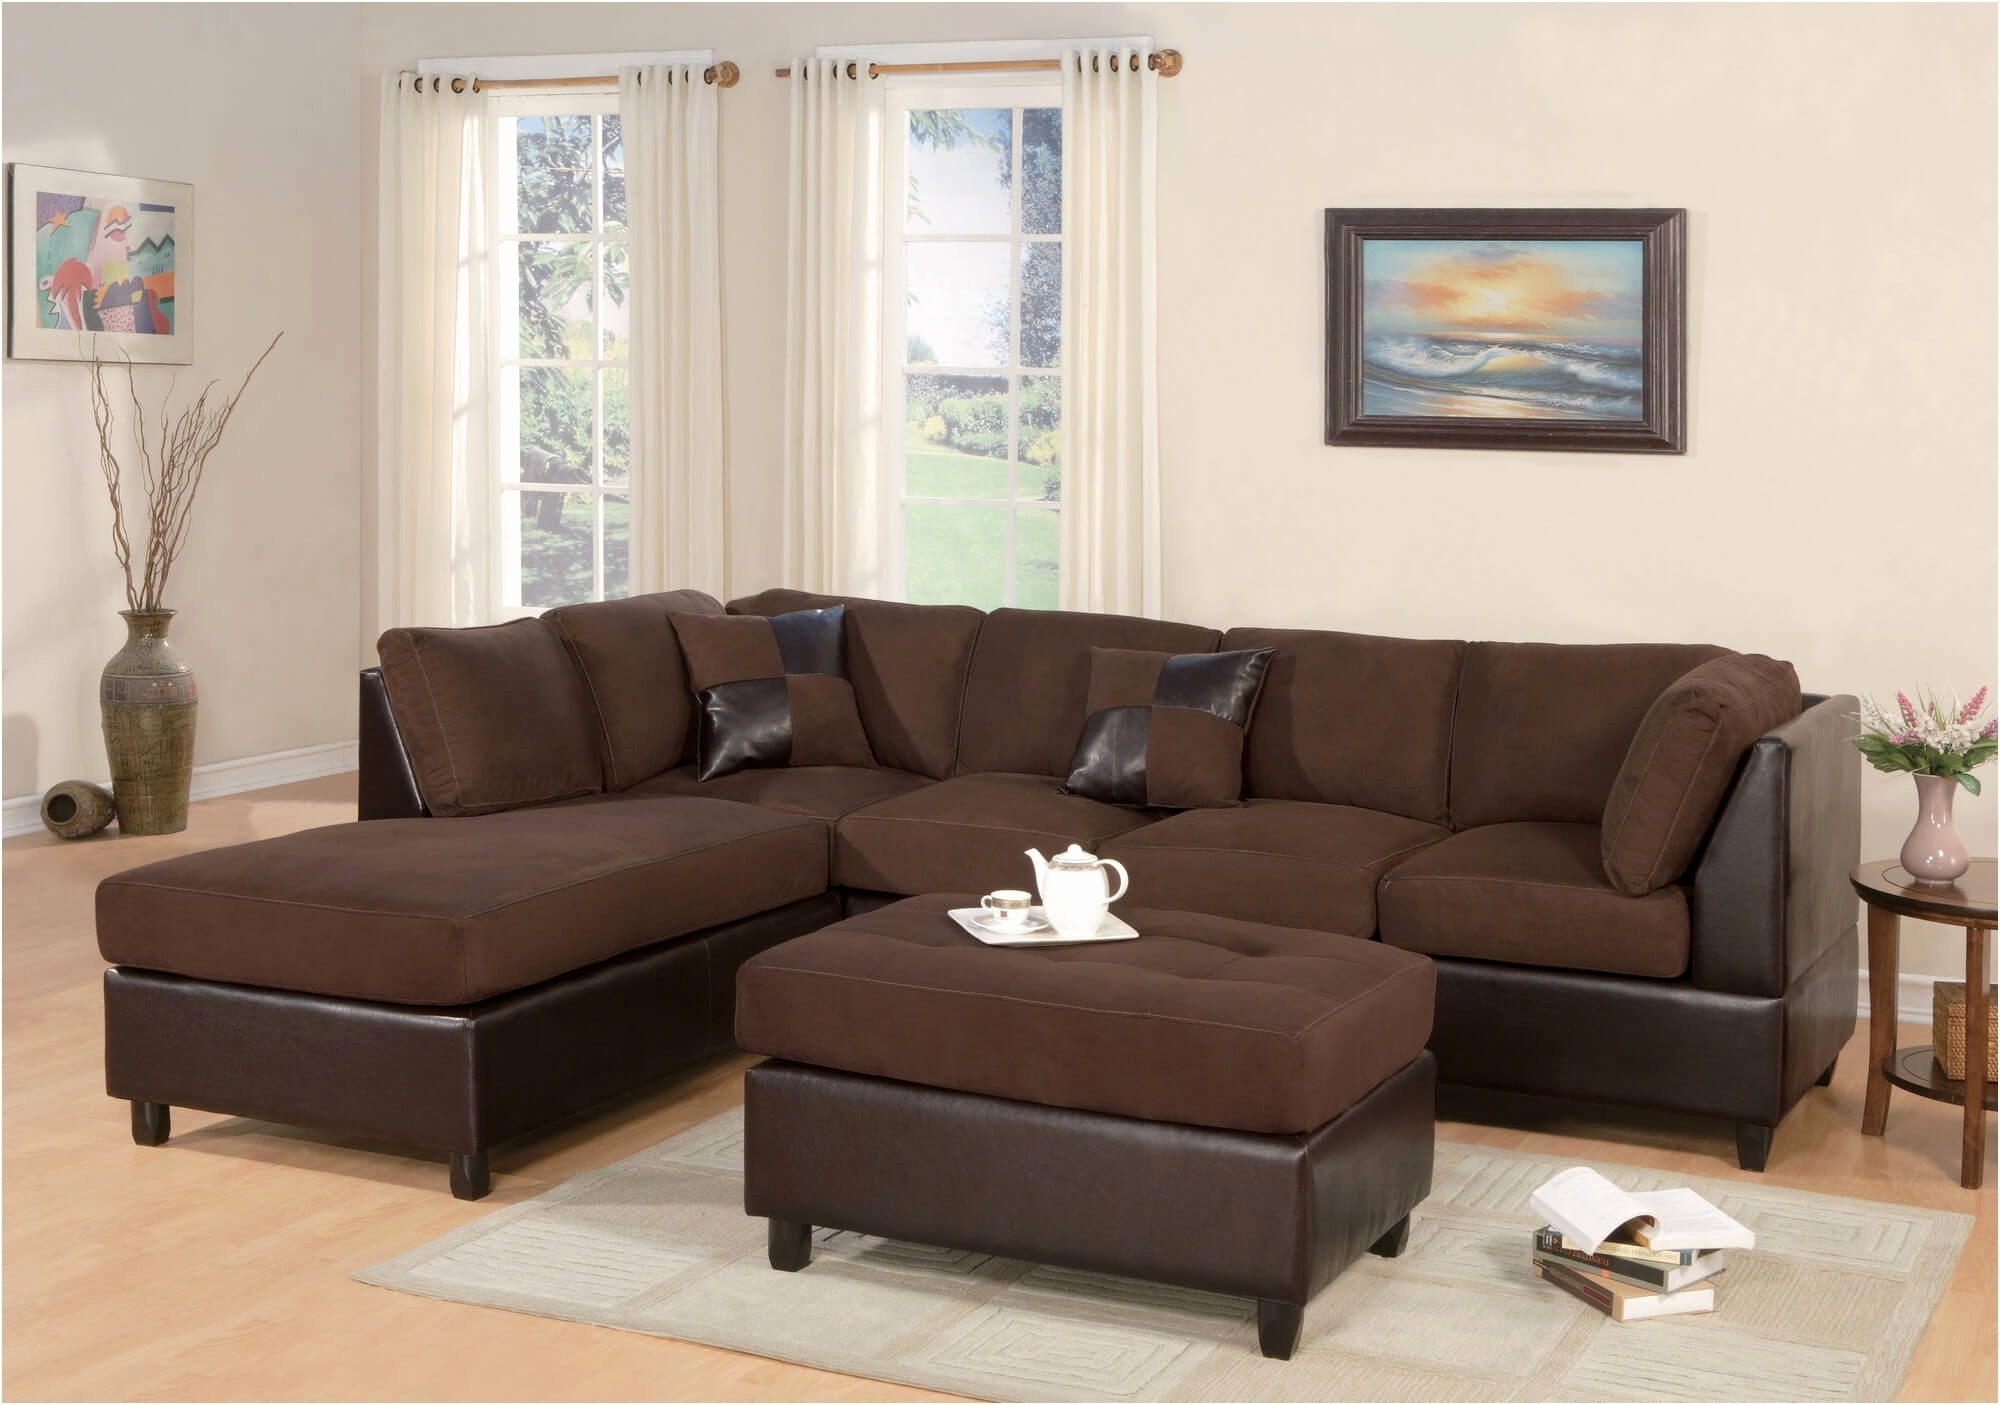 Inspirational High Quality Sectional Sofa New – Sofa Furnitures Within Newest High Quality Sectional Sofas (View 10 of 20)